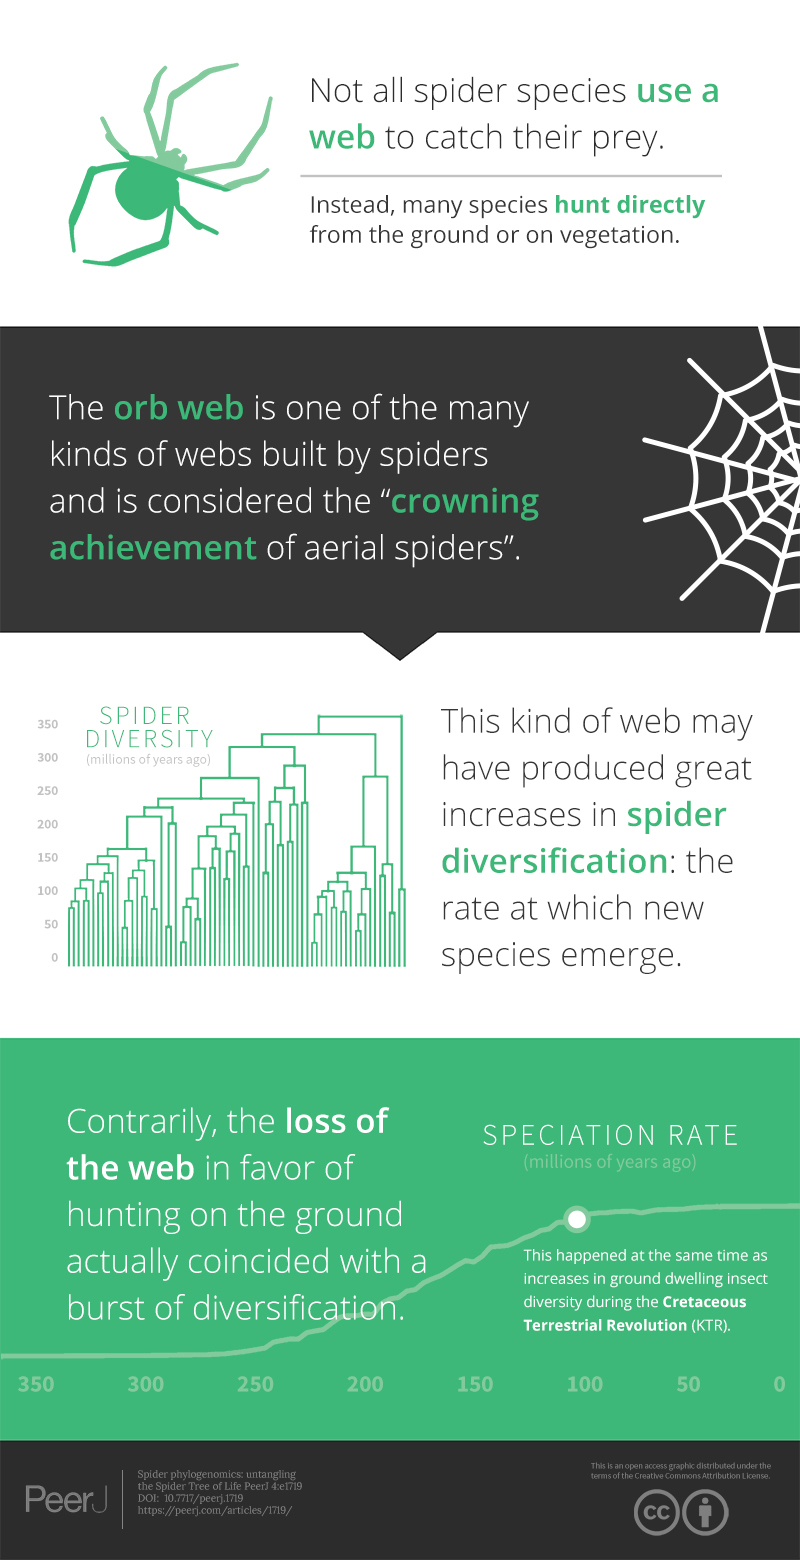 Spider phylogenomics: untangling the Spider Tree of Life [PeerJ]